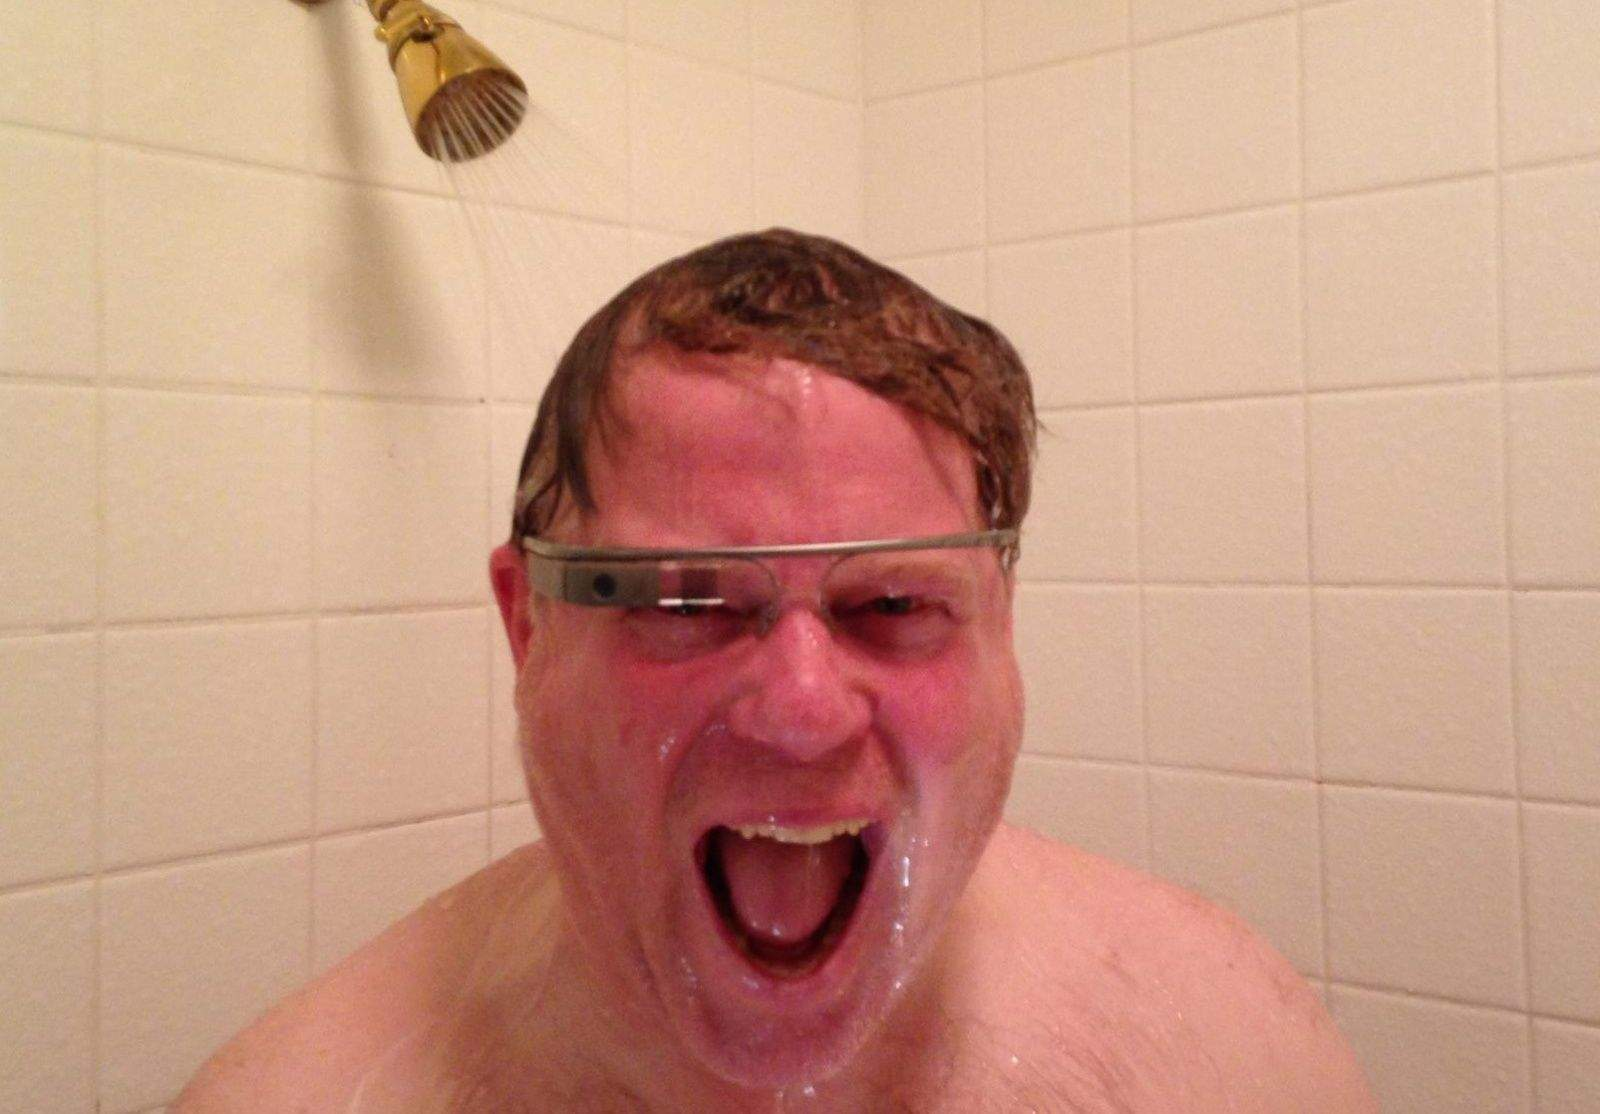 This guy claims Apple's AR headset is nearly ready.